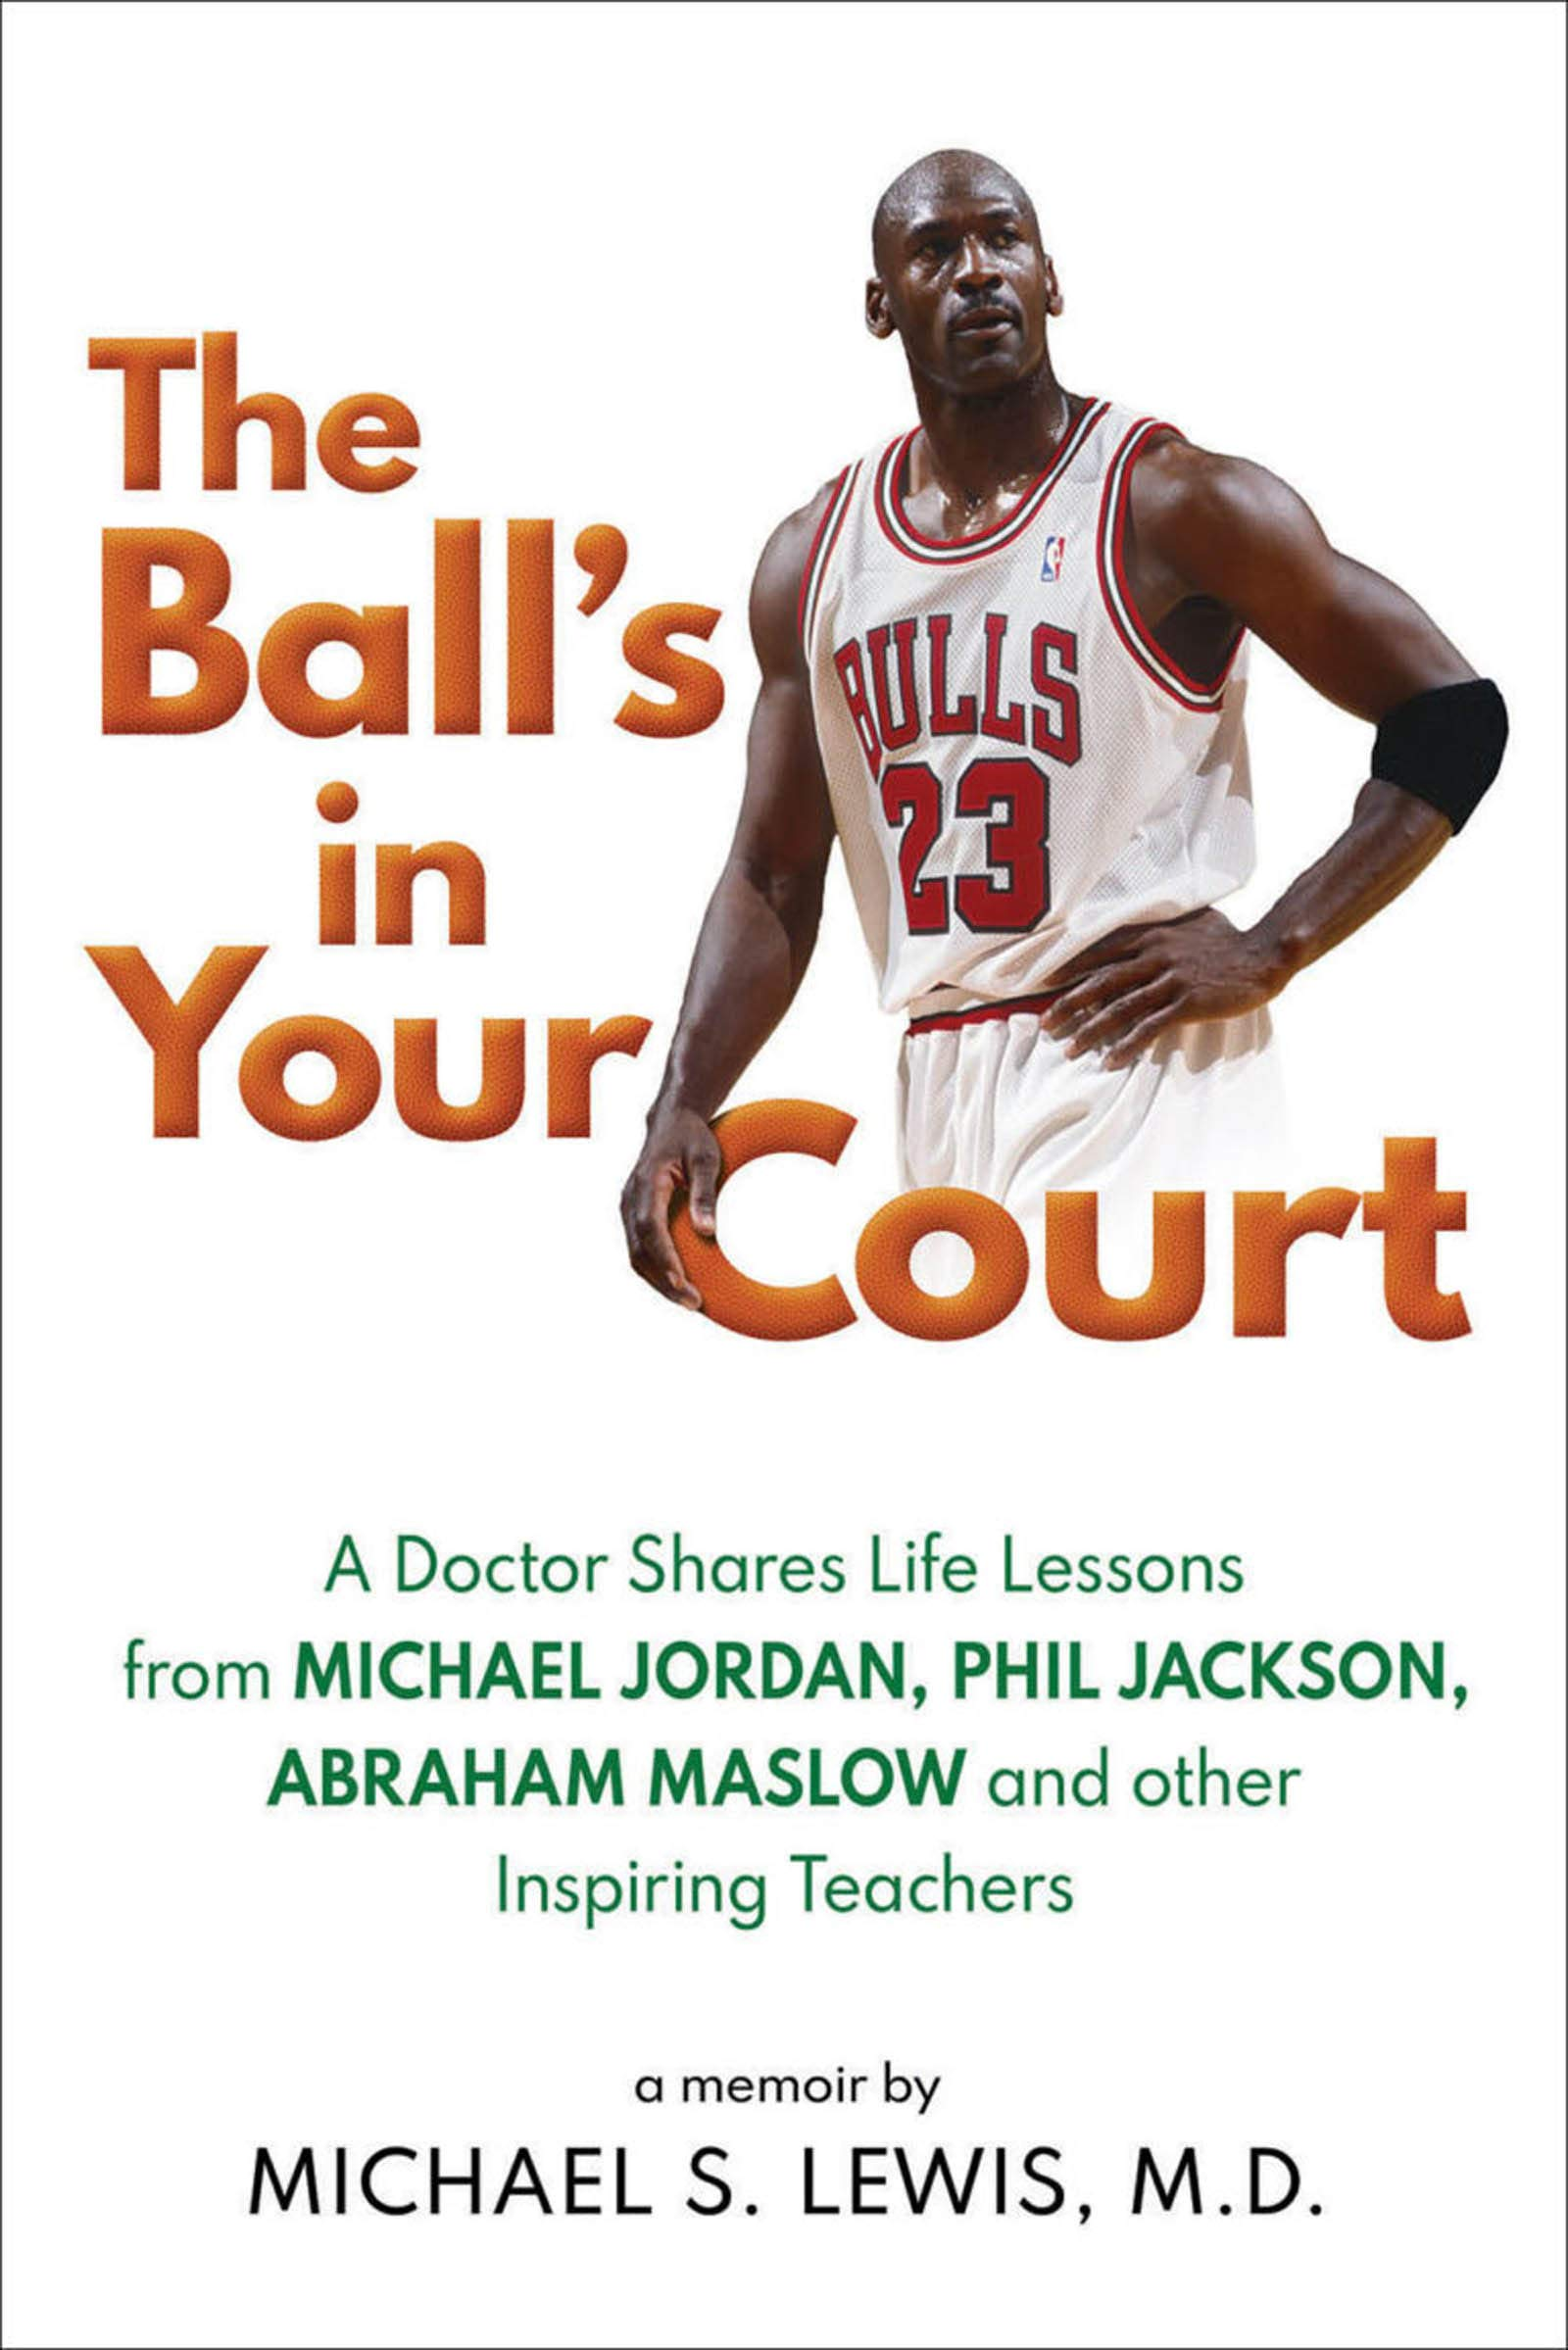 Download The Ball's In Your Court 